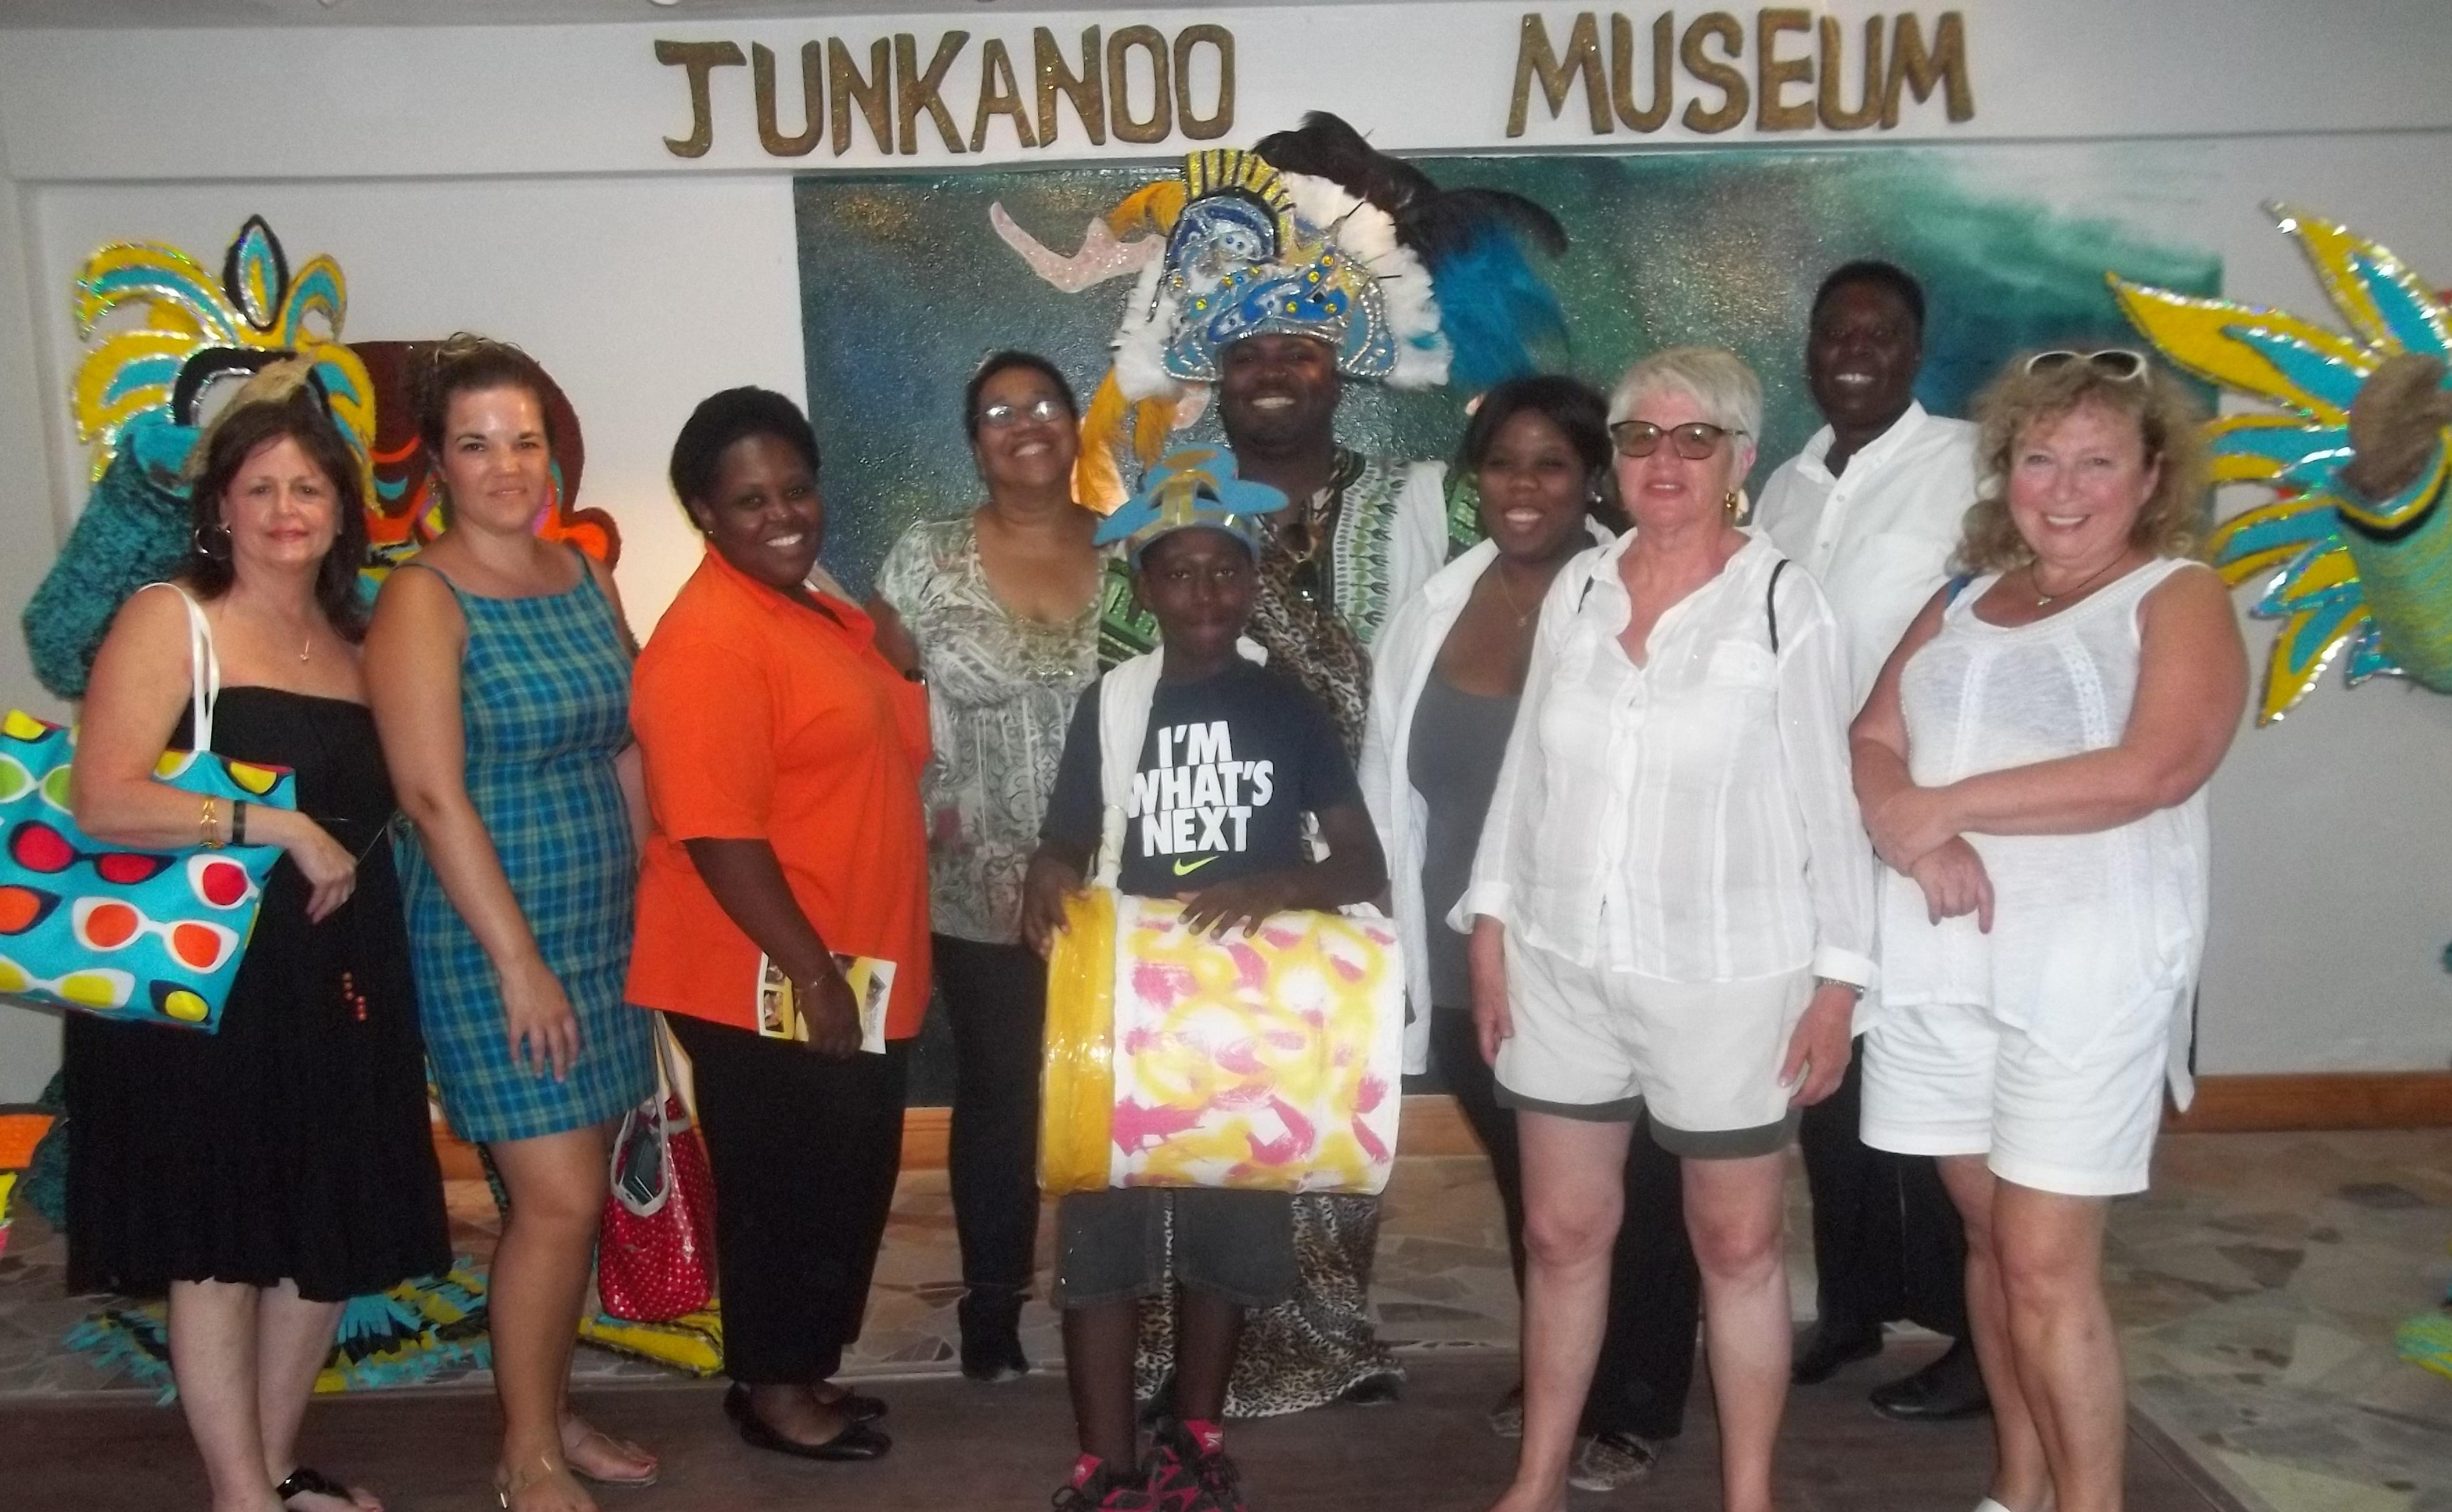 be sure to visit the Junkanoo Museum. interesting walk through the origins and history of this festival.